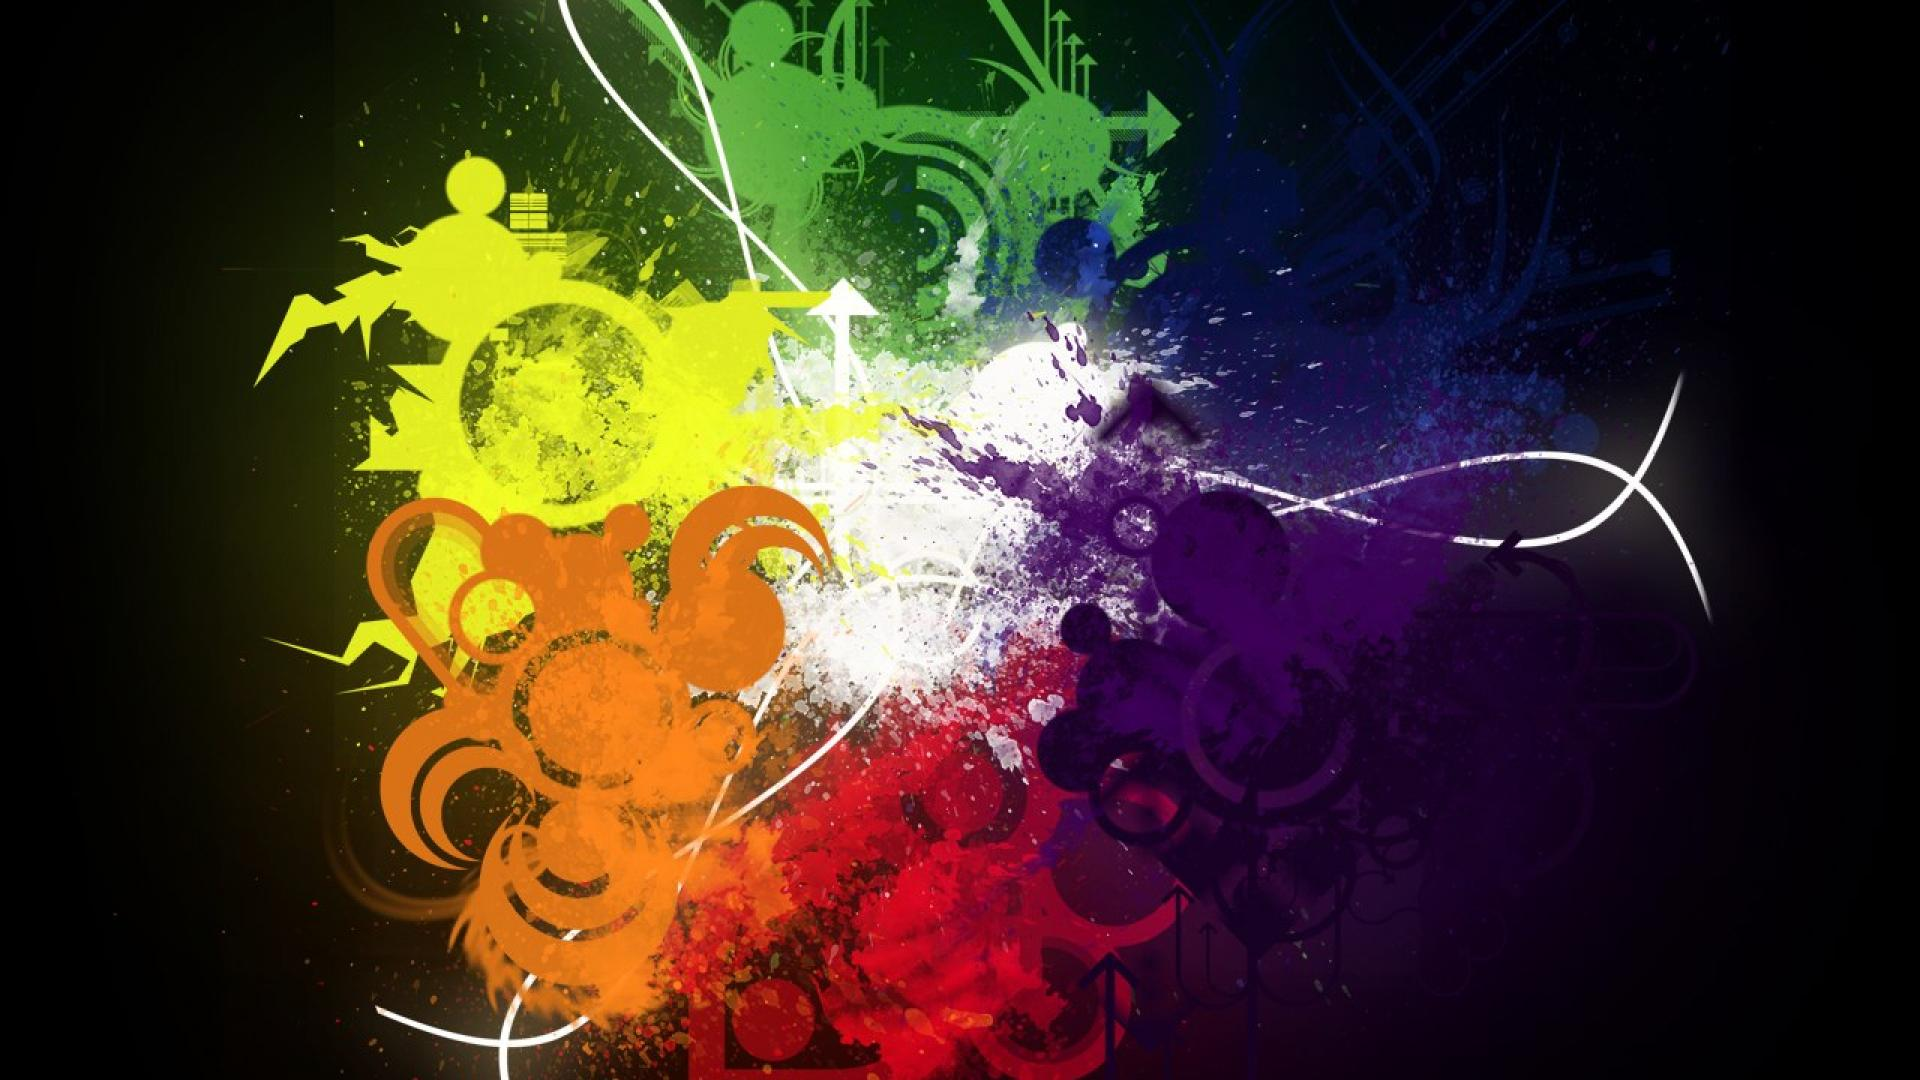 awesome hd Spectrum Backgrounds